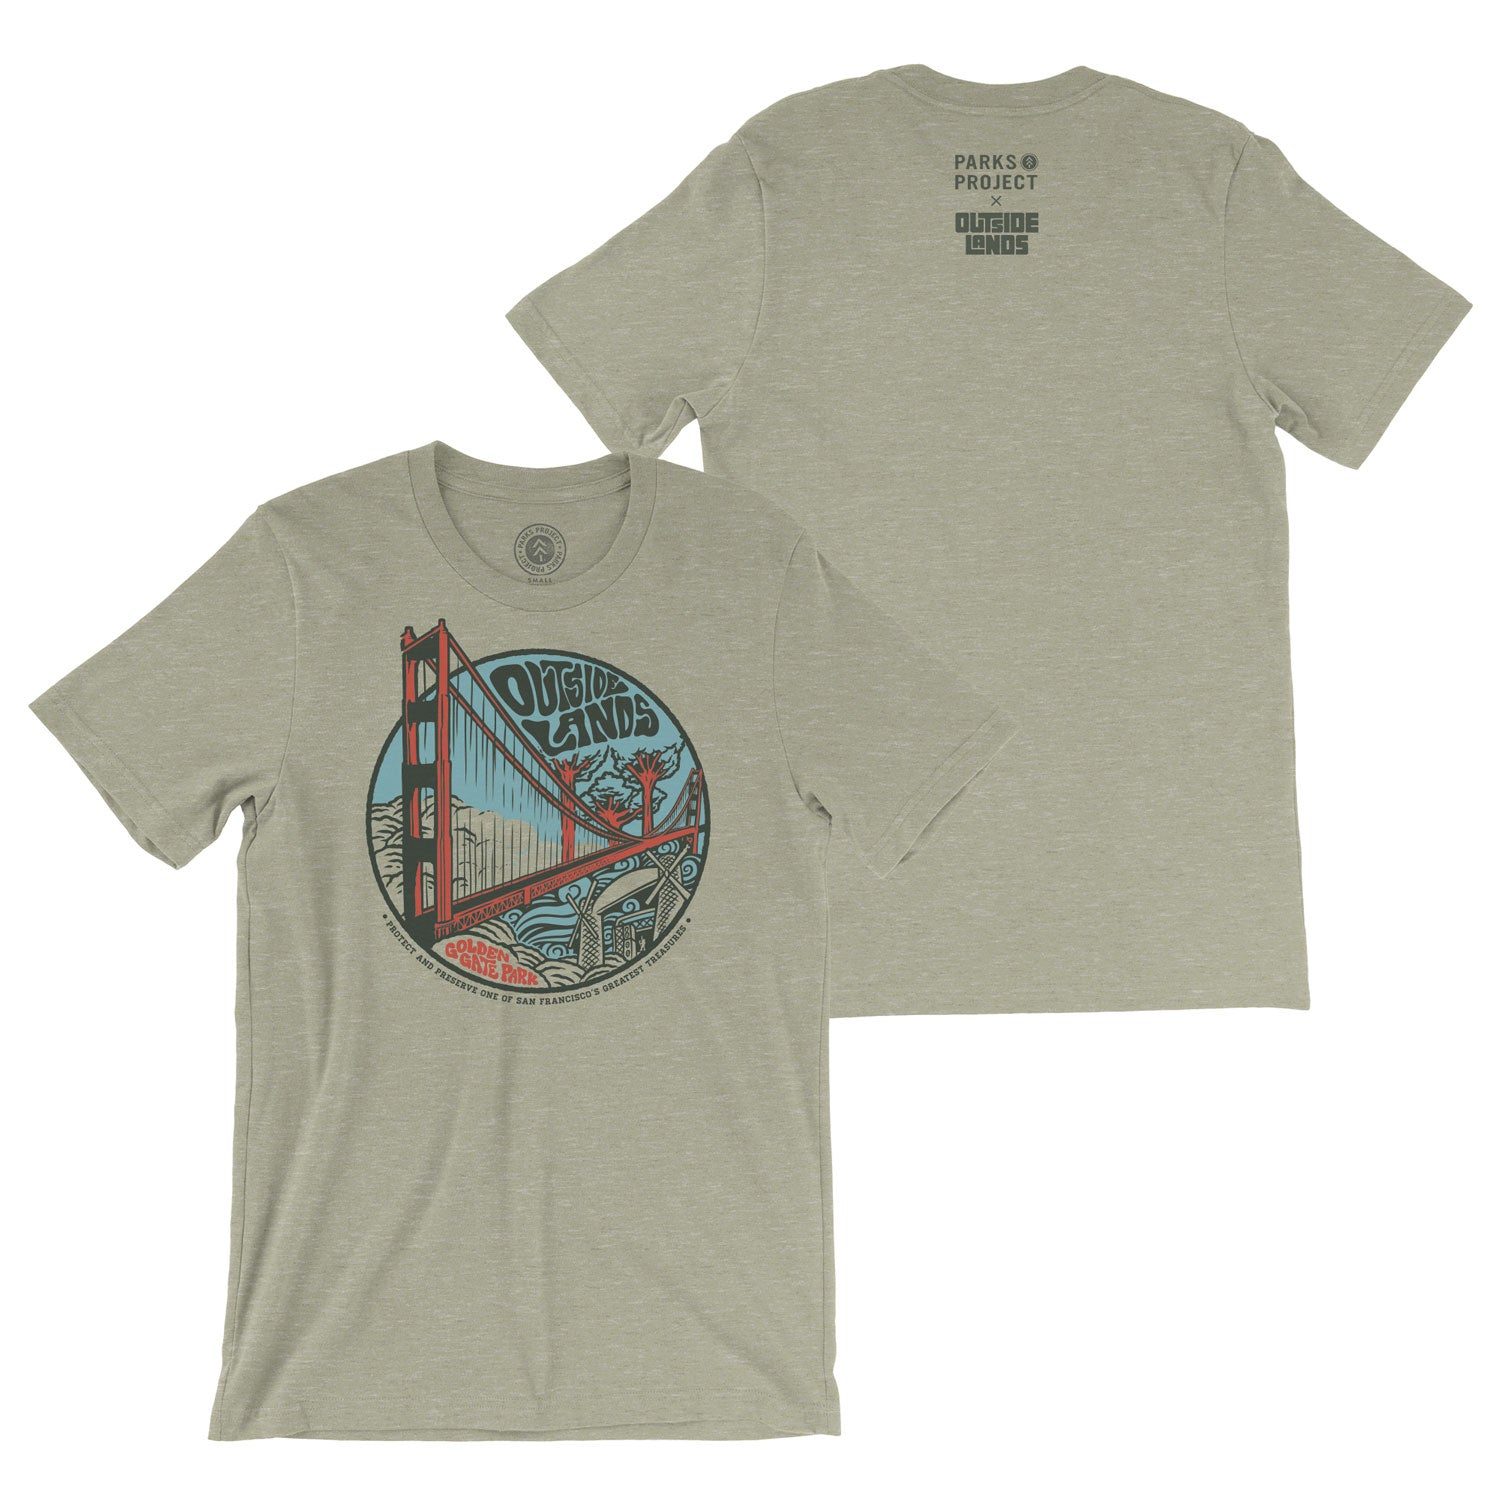 Parks Project x Outside Lands Tee | Parks Project | National Park Shirt